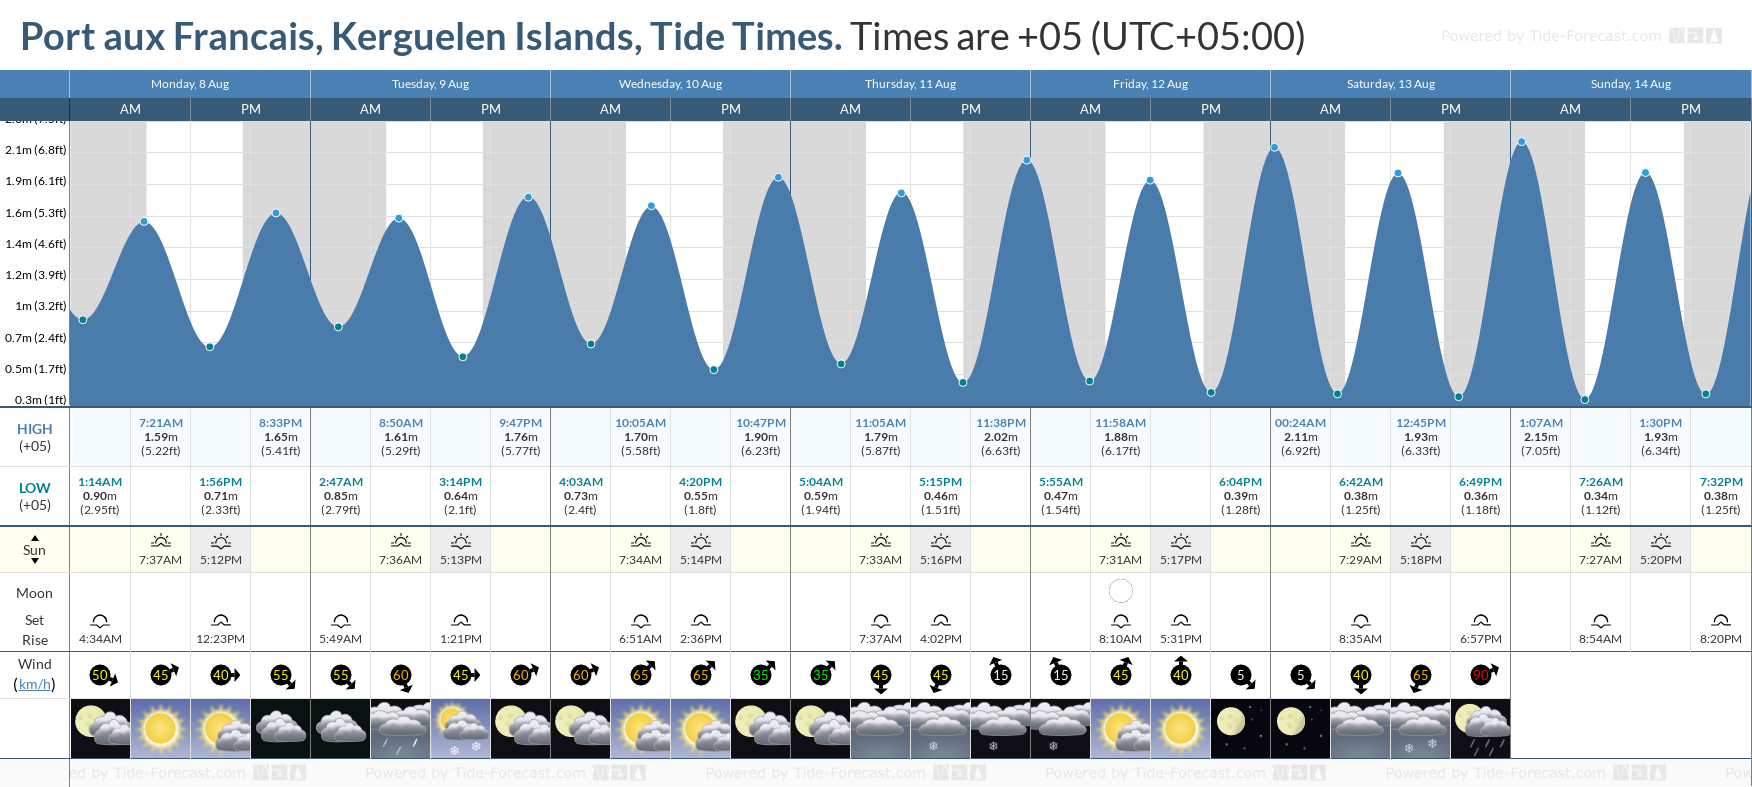 Port aux Francais, Kerguelen Islands Tide Chart including high and low tide tide times for the next 7 days